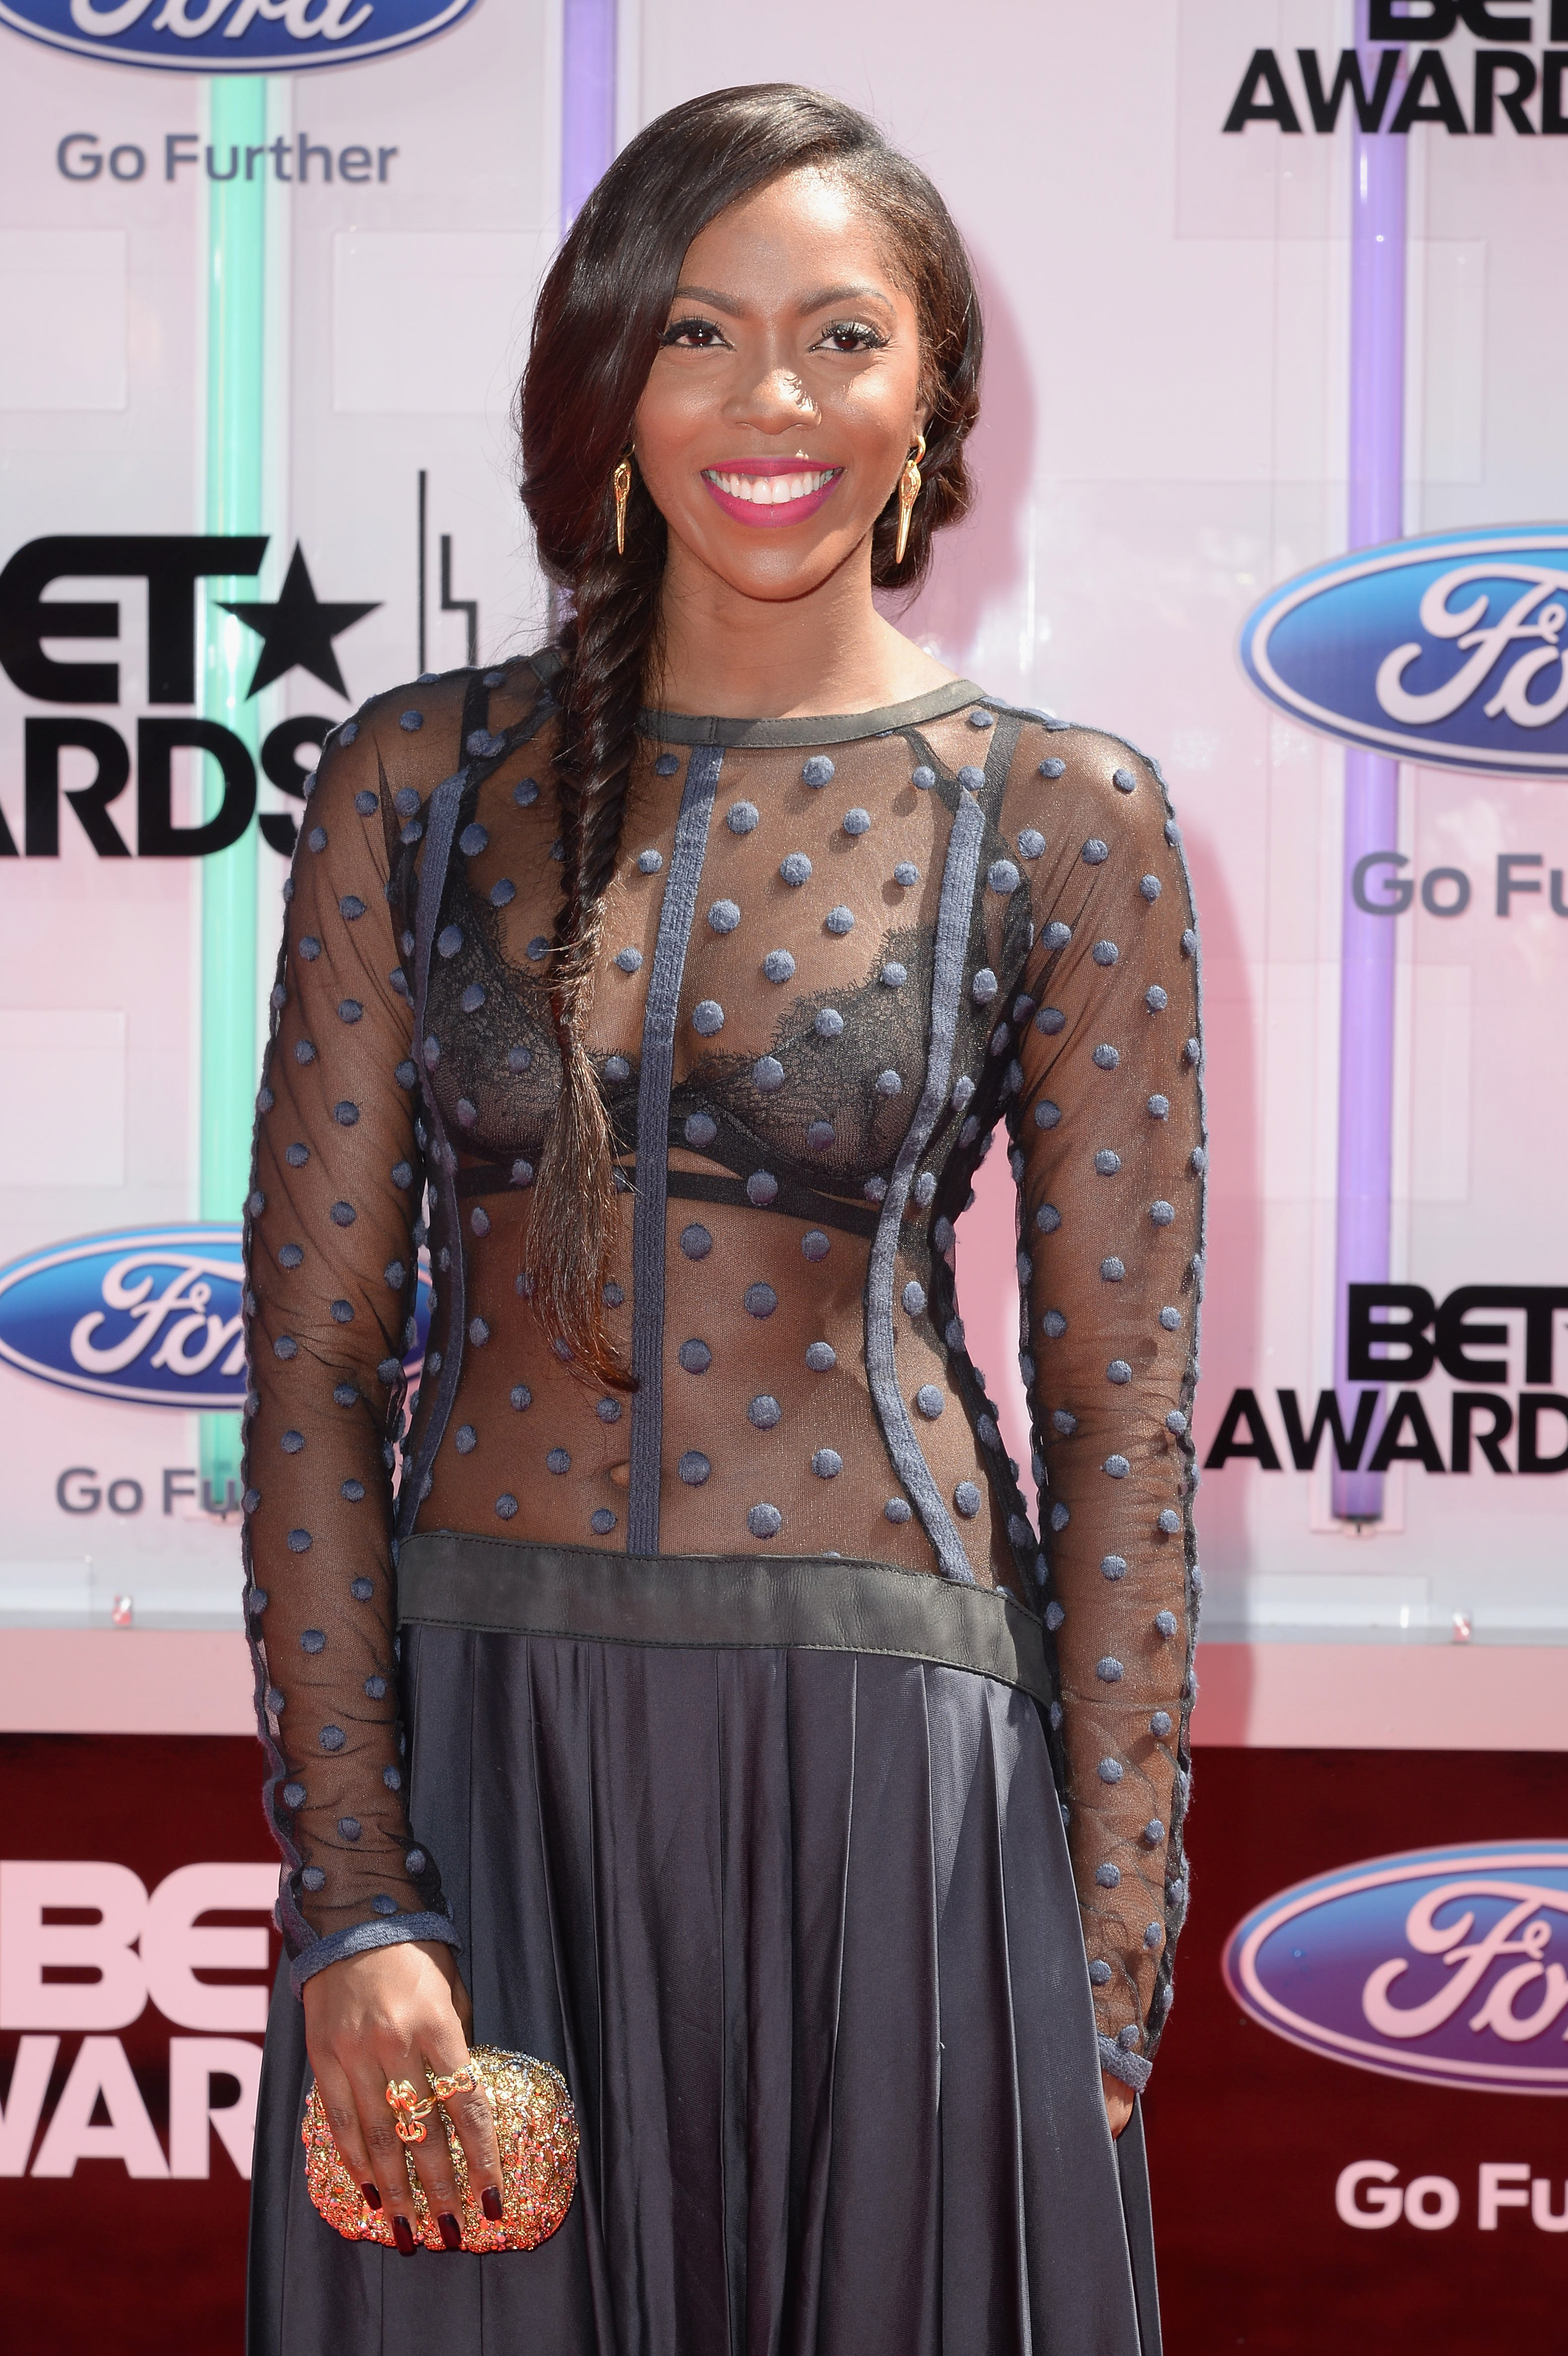 Singer-songwriter Tiwa Savage attends the BET AWARDS '14 at Nokia Theatre L.A. LIVE on June 29, 2014 in Los Angeles, California.  (Getty)